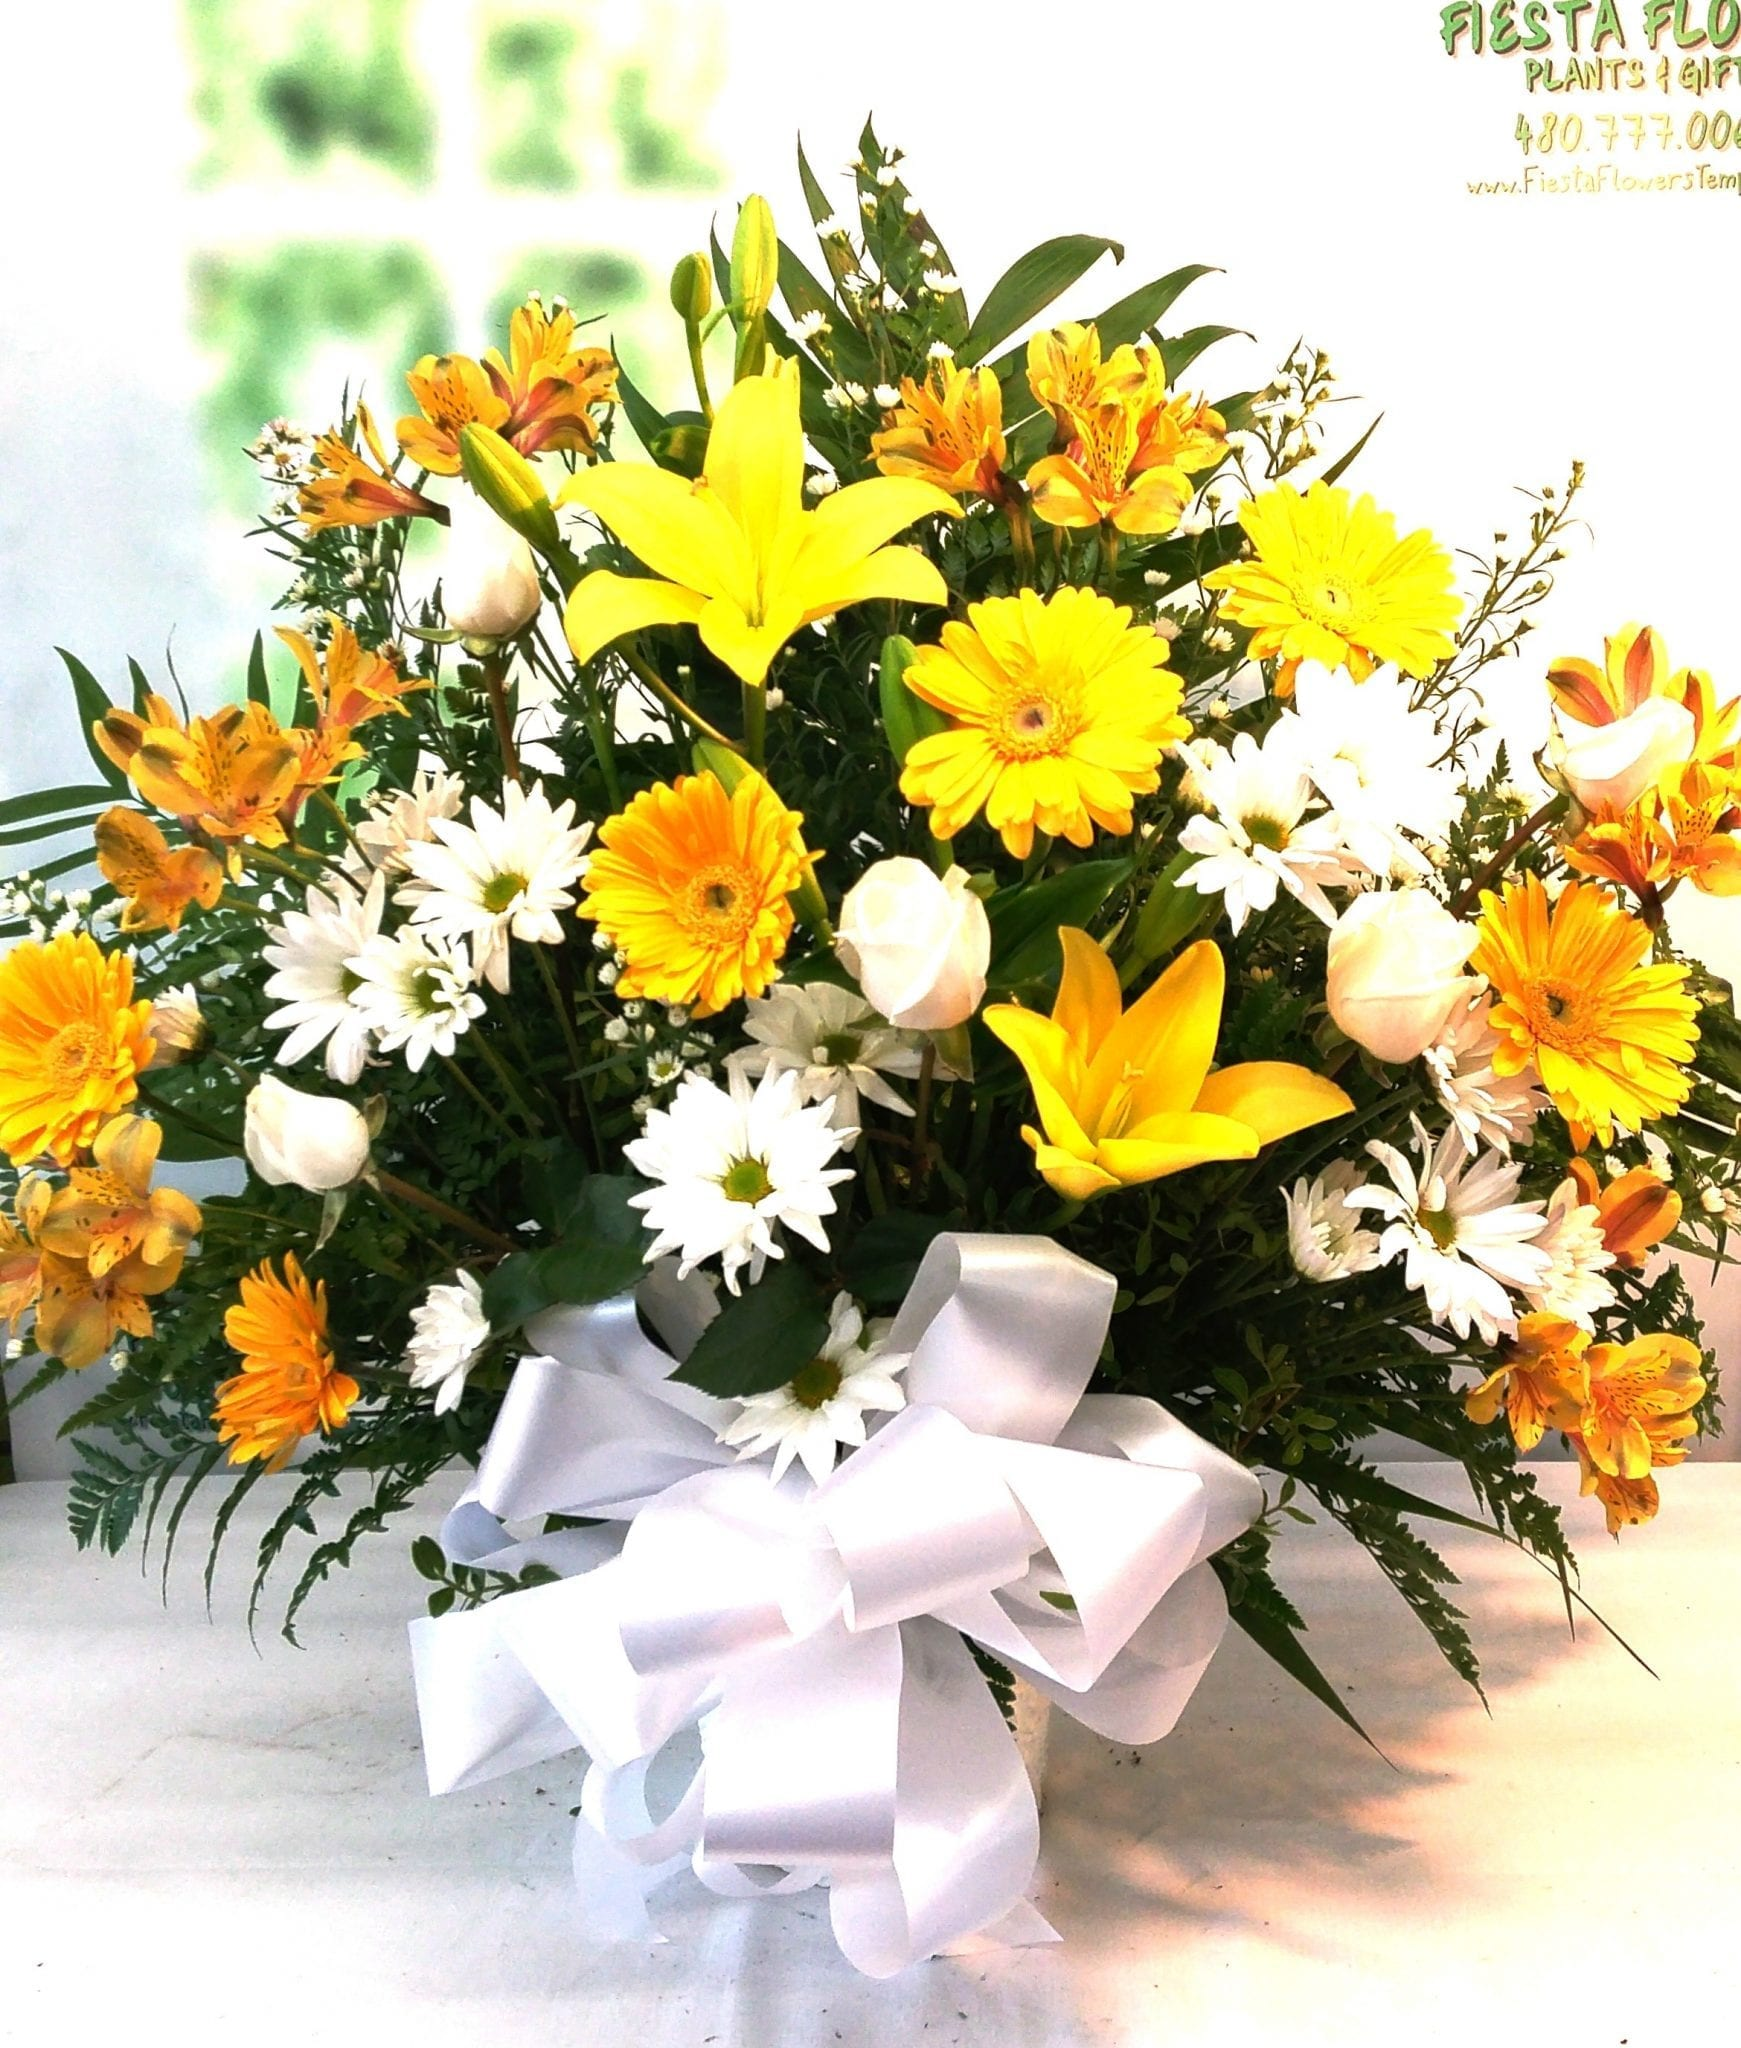 Next day delivery yellow lily and gerbera daisy tribute fb 507 1 next day delivery yellow lily and gerbera daisy tribute fb 507 1 izmirmasajfo